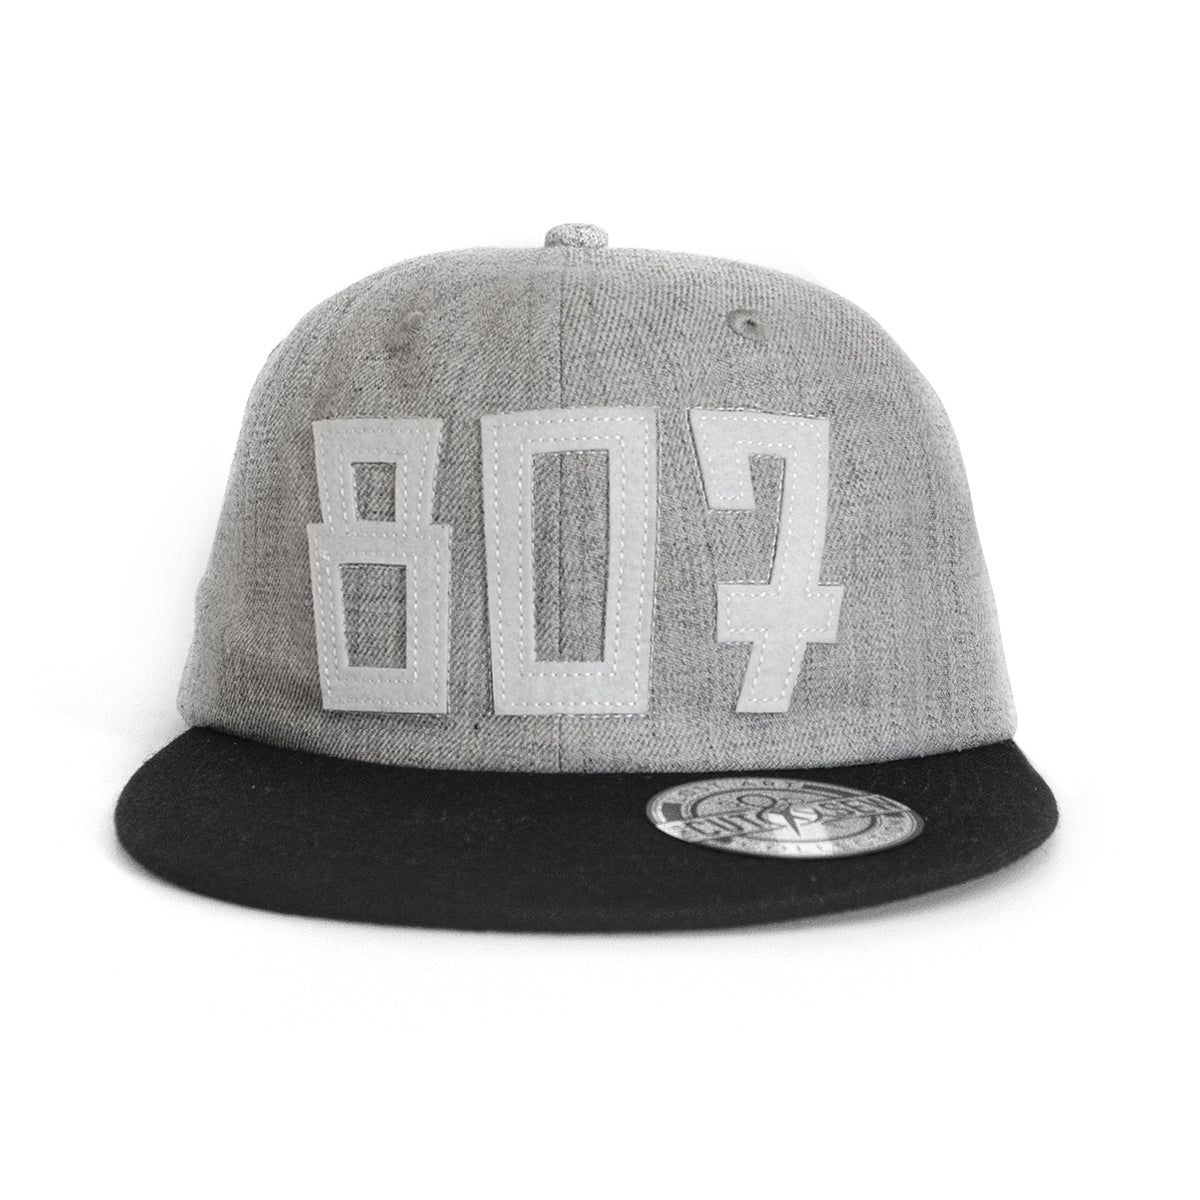 Lost Art Canada - white 807 grey wool mix snapback hat front view